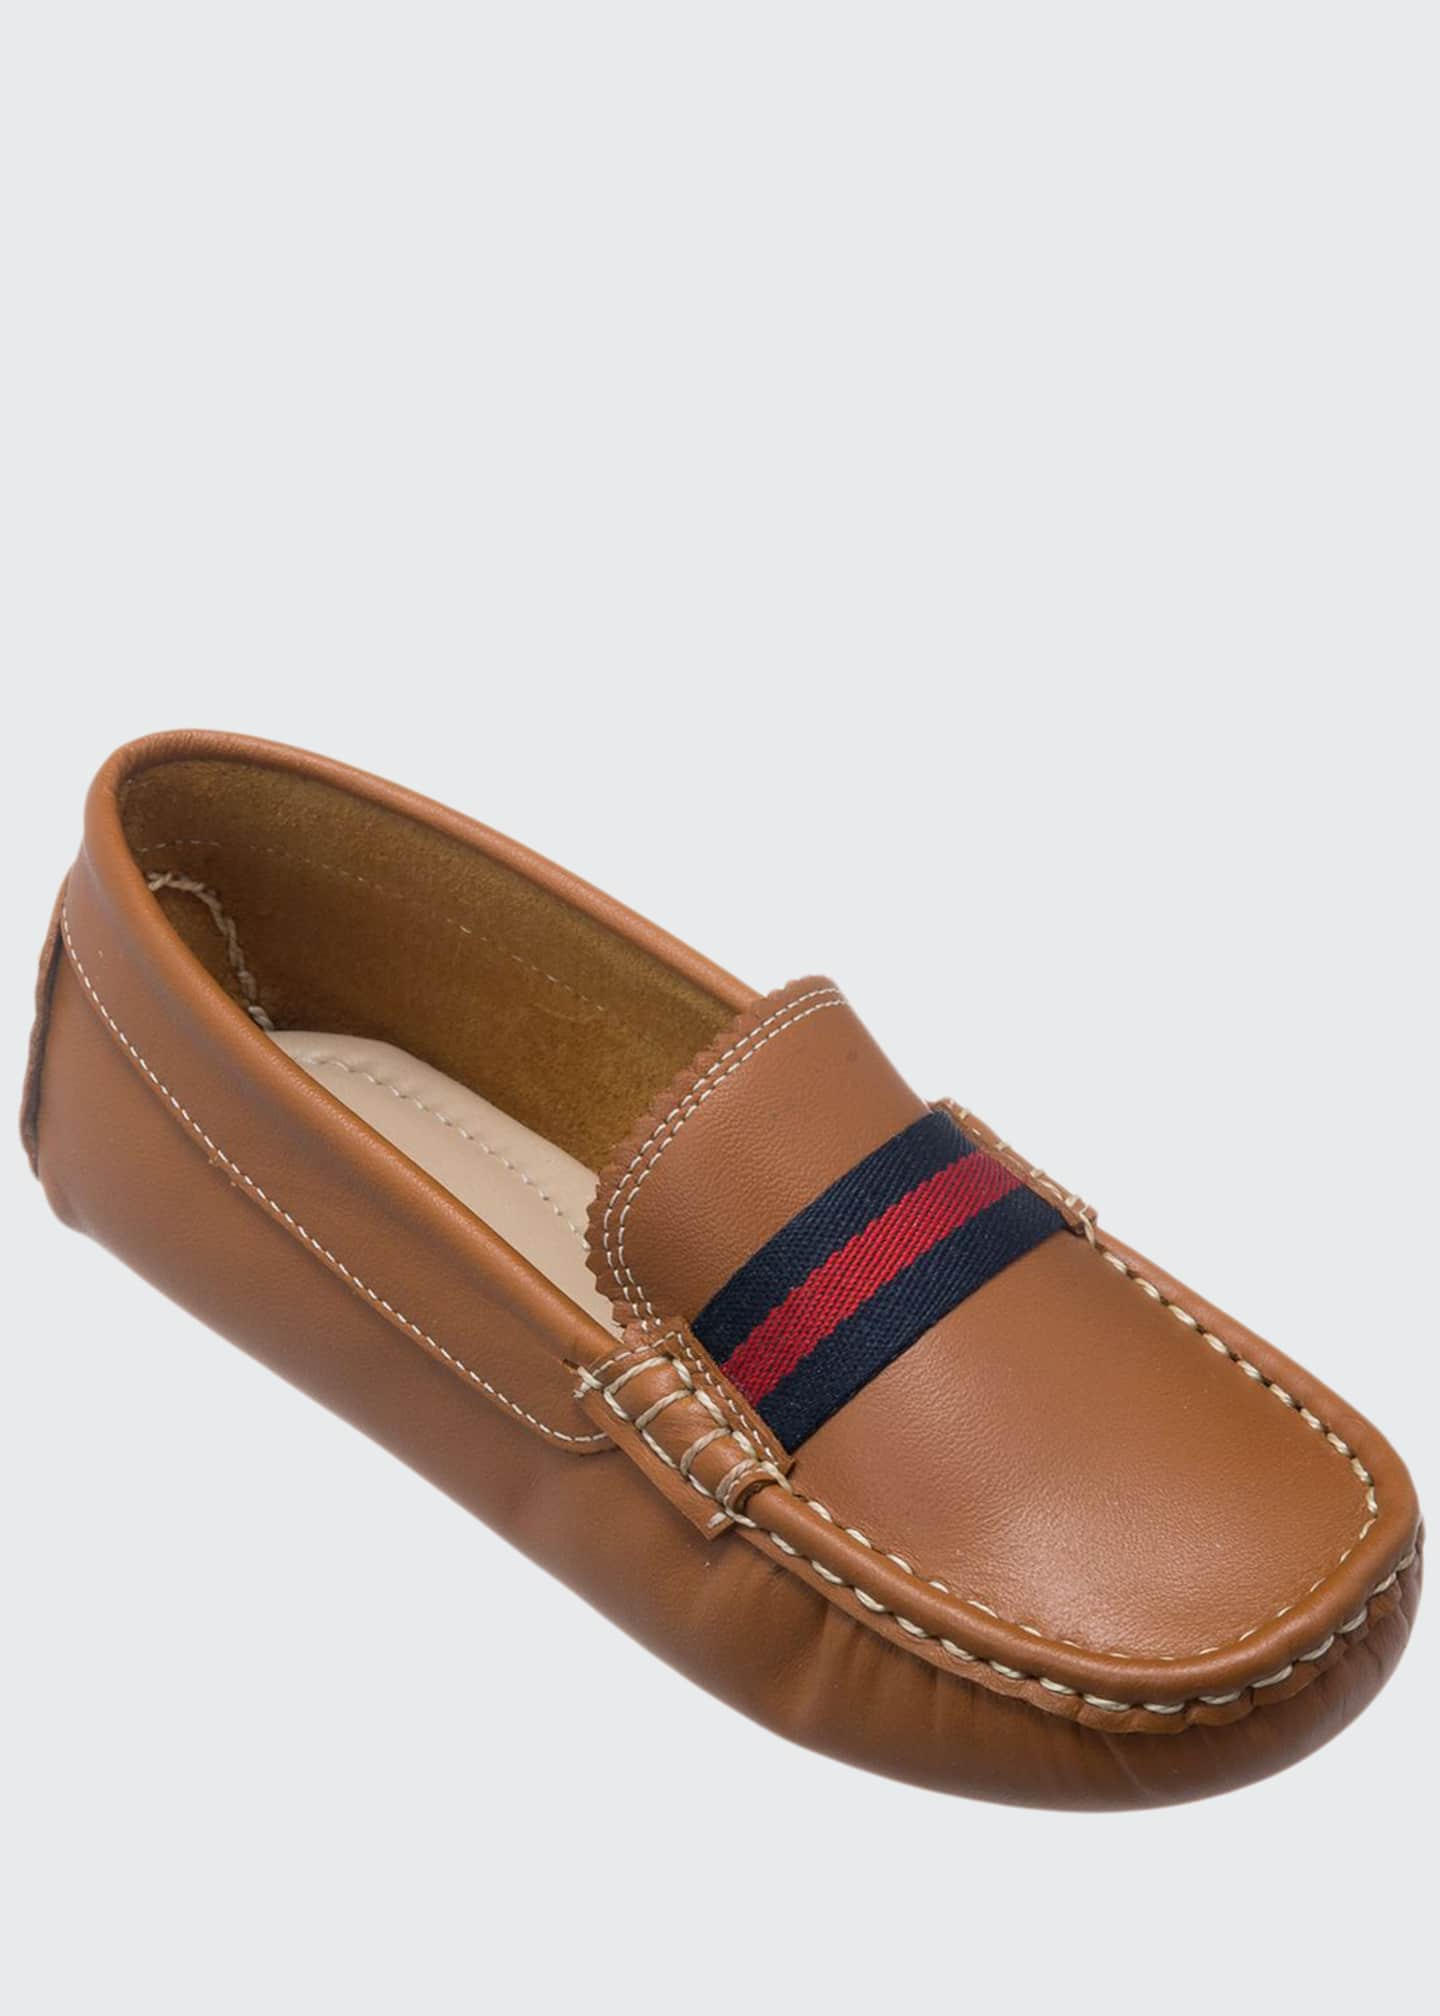 Elephantito Boys' Leather Club Loafer, Toddler